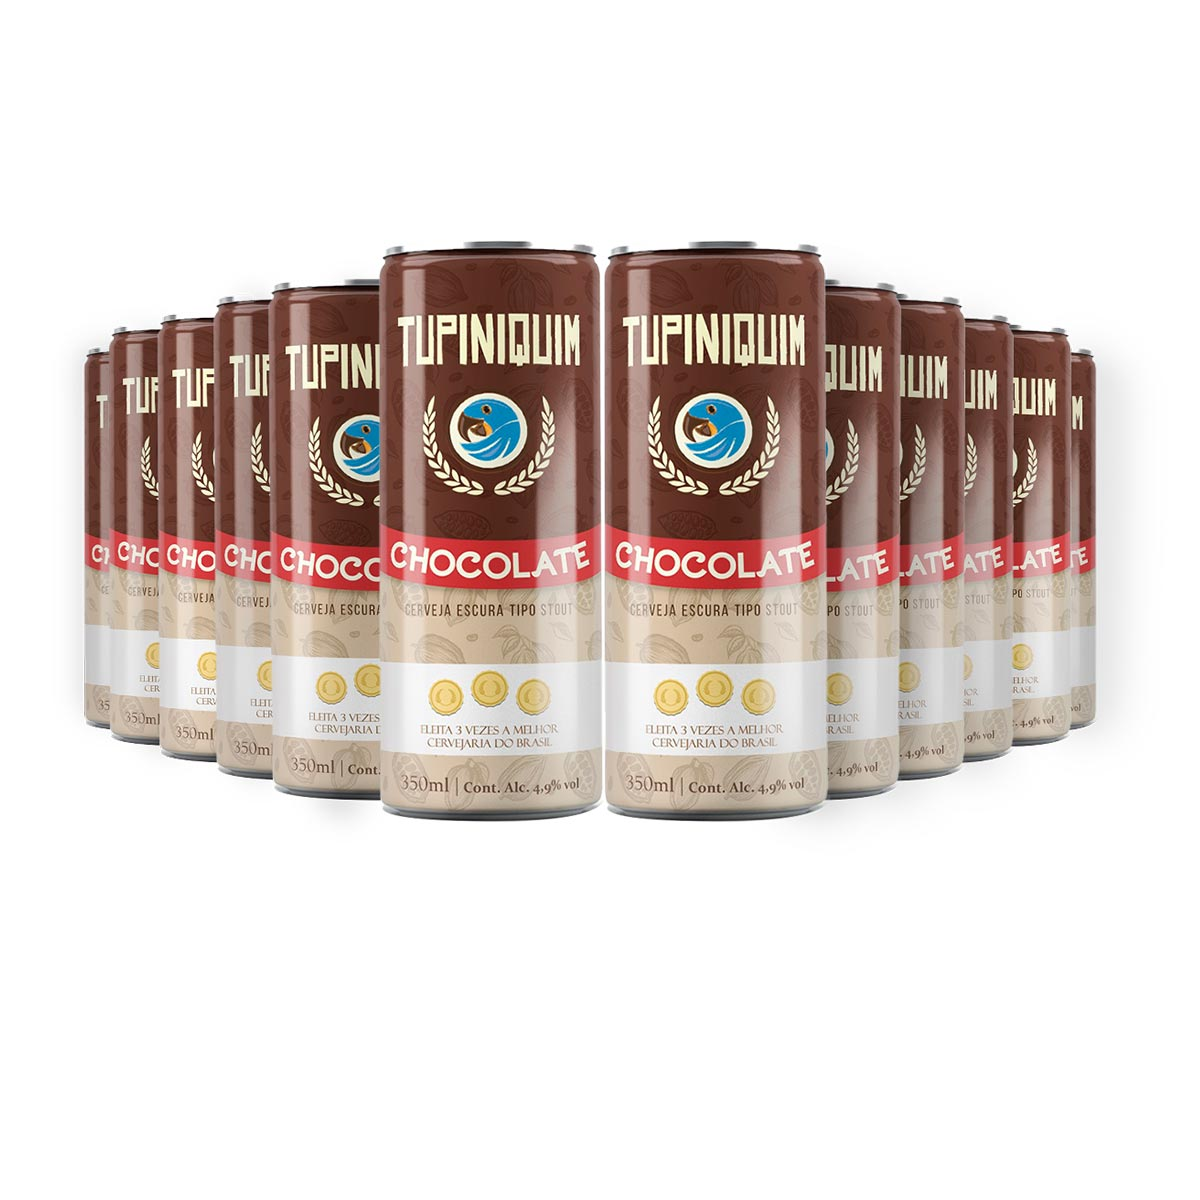 Pack Tupiniquim Chocolate Stout 12 cervejas 350ml